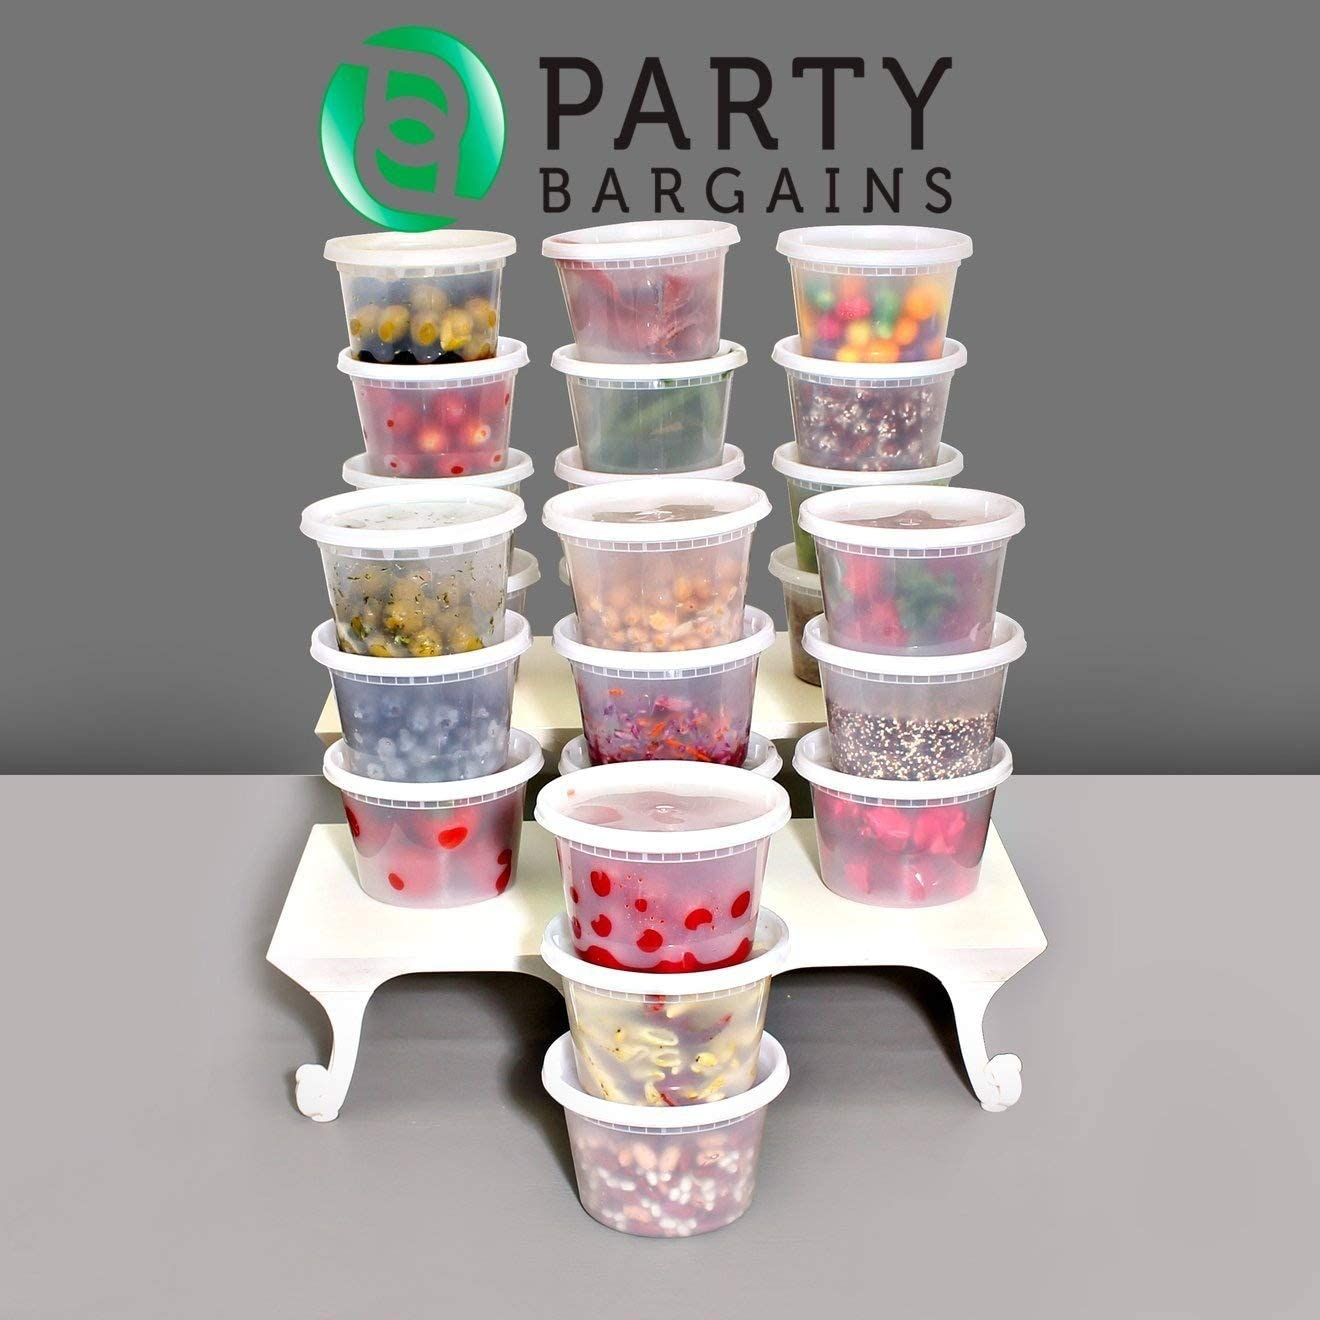 Party Bargains Storage Containers with Lids | Foodsavers Deli Containers, Microwave Temperature Resilient, Dishwasher Safe Stackable, Leak Proof & Reusable -16oz | Pack of 24